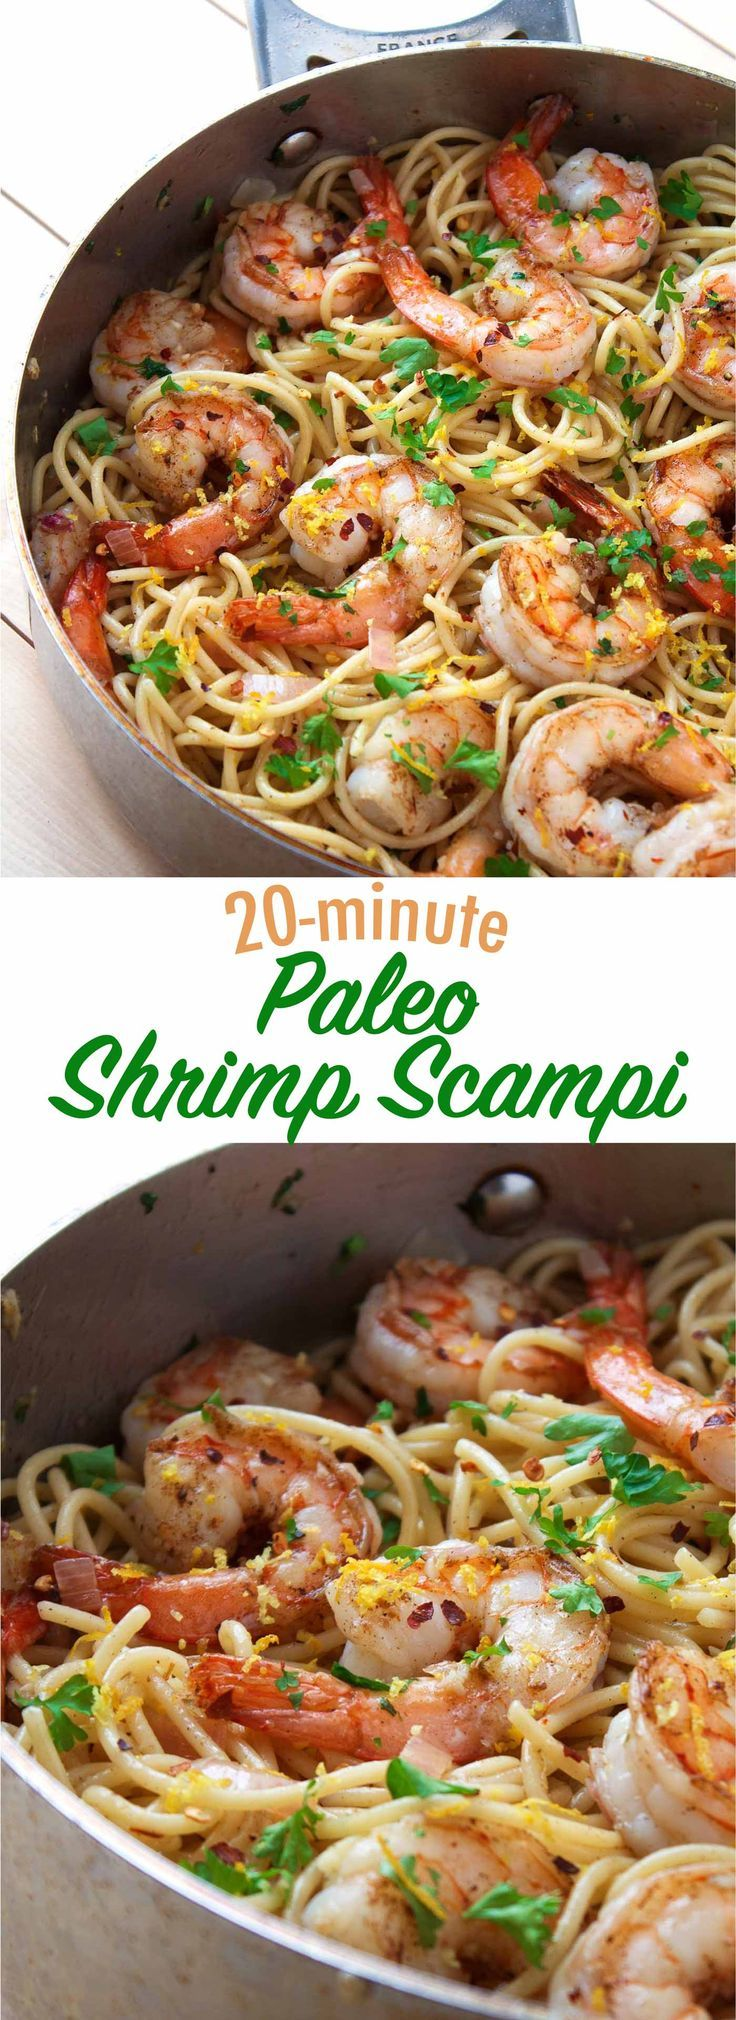 Perfect for a simple, quick weeknight meal and only takes 20 minutes to make! This shrimp scampi recipe is paleo, gluten free, and dairy free.